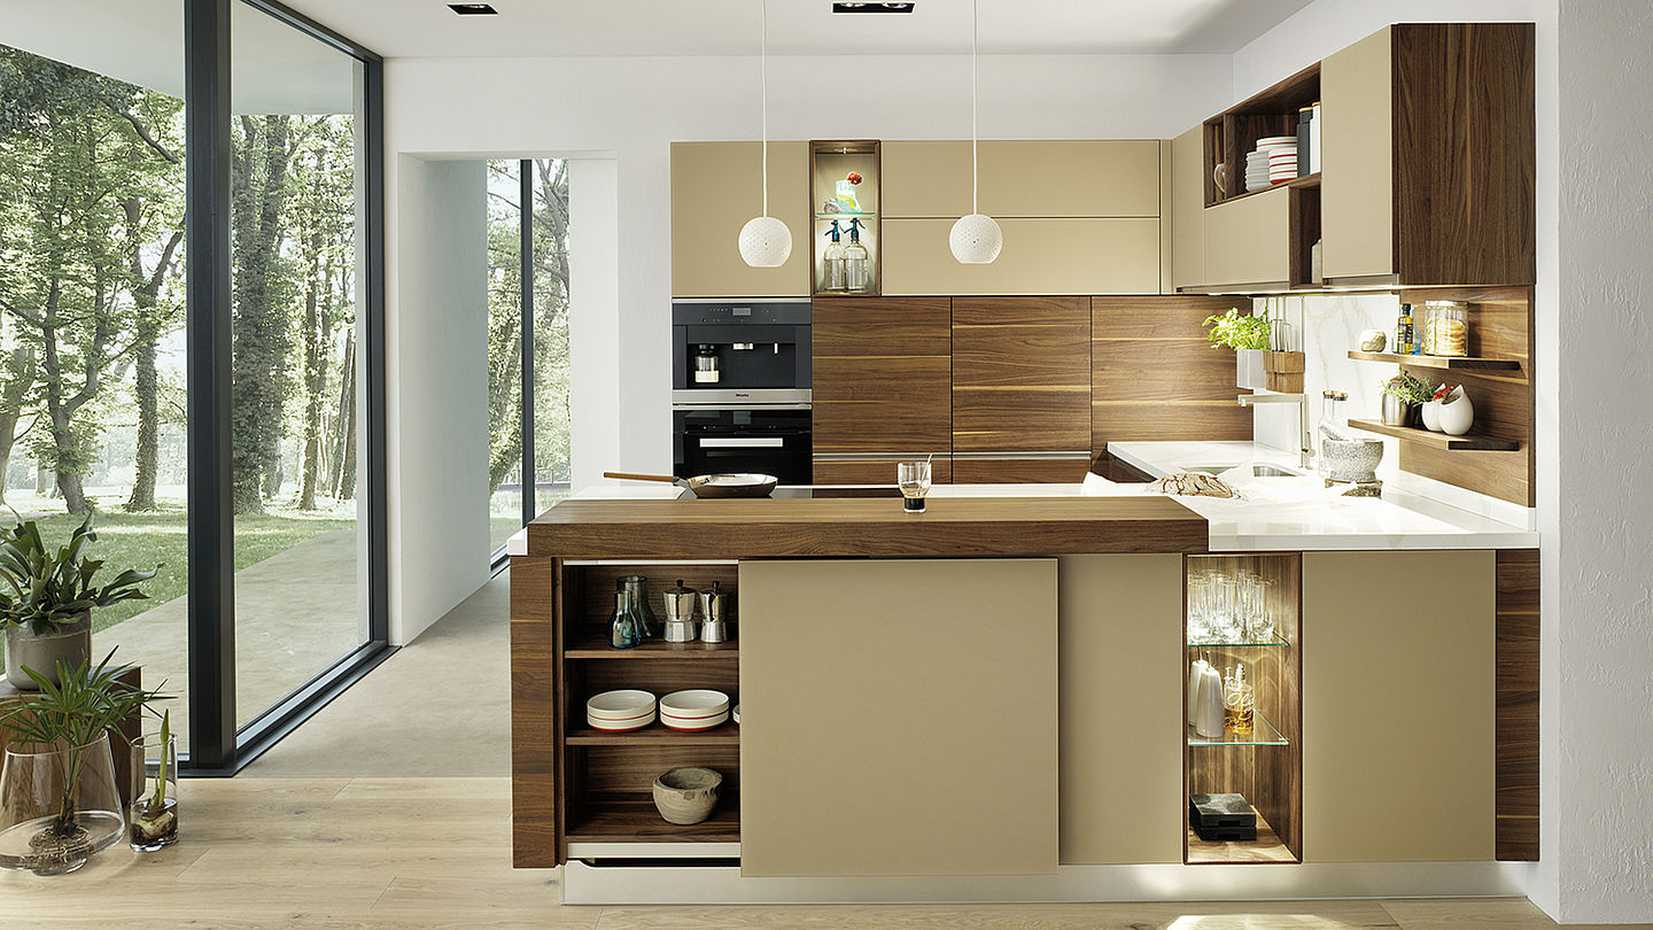 Linee Kitchen by Team 7 product image 4